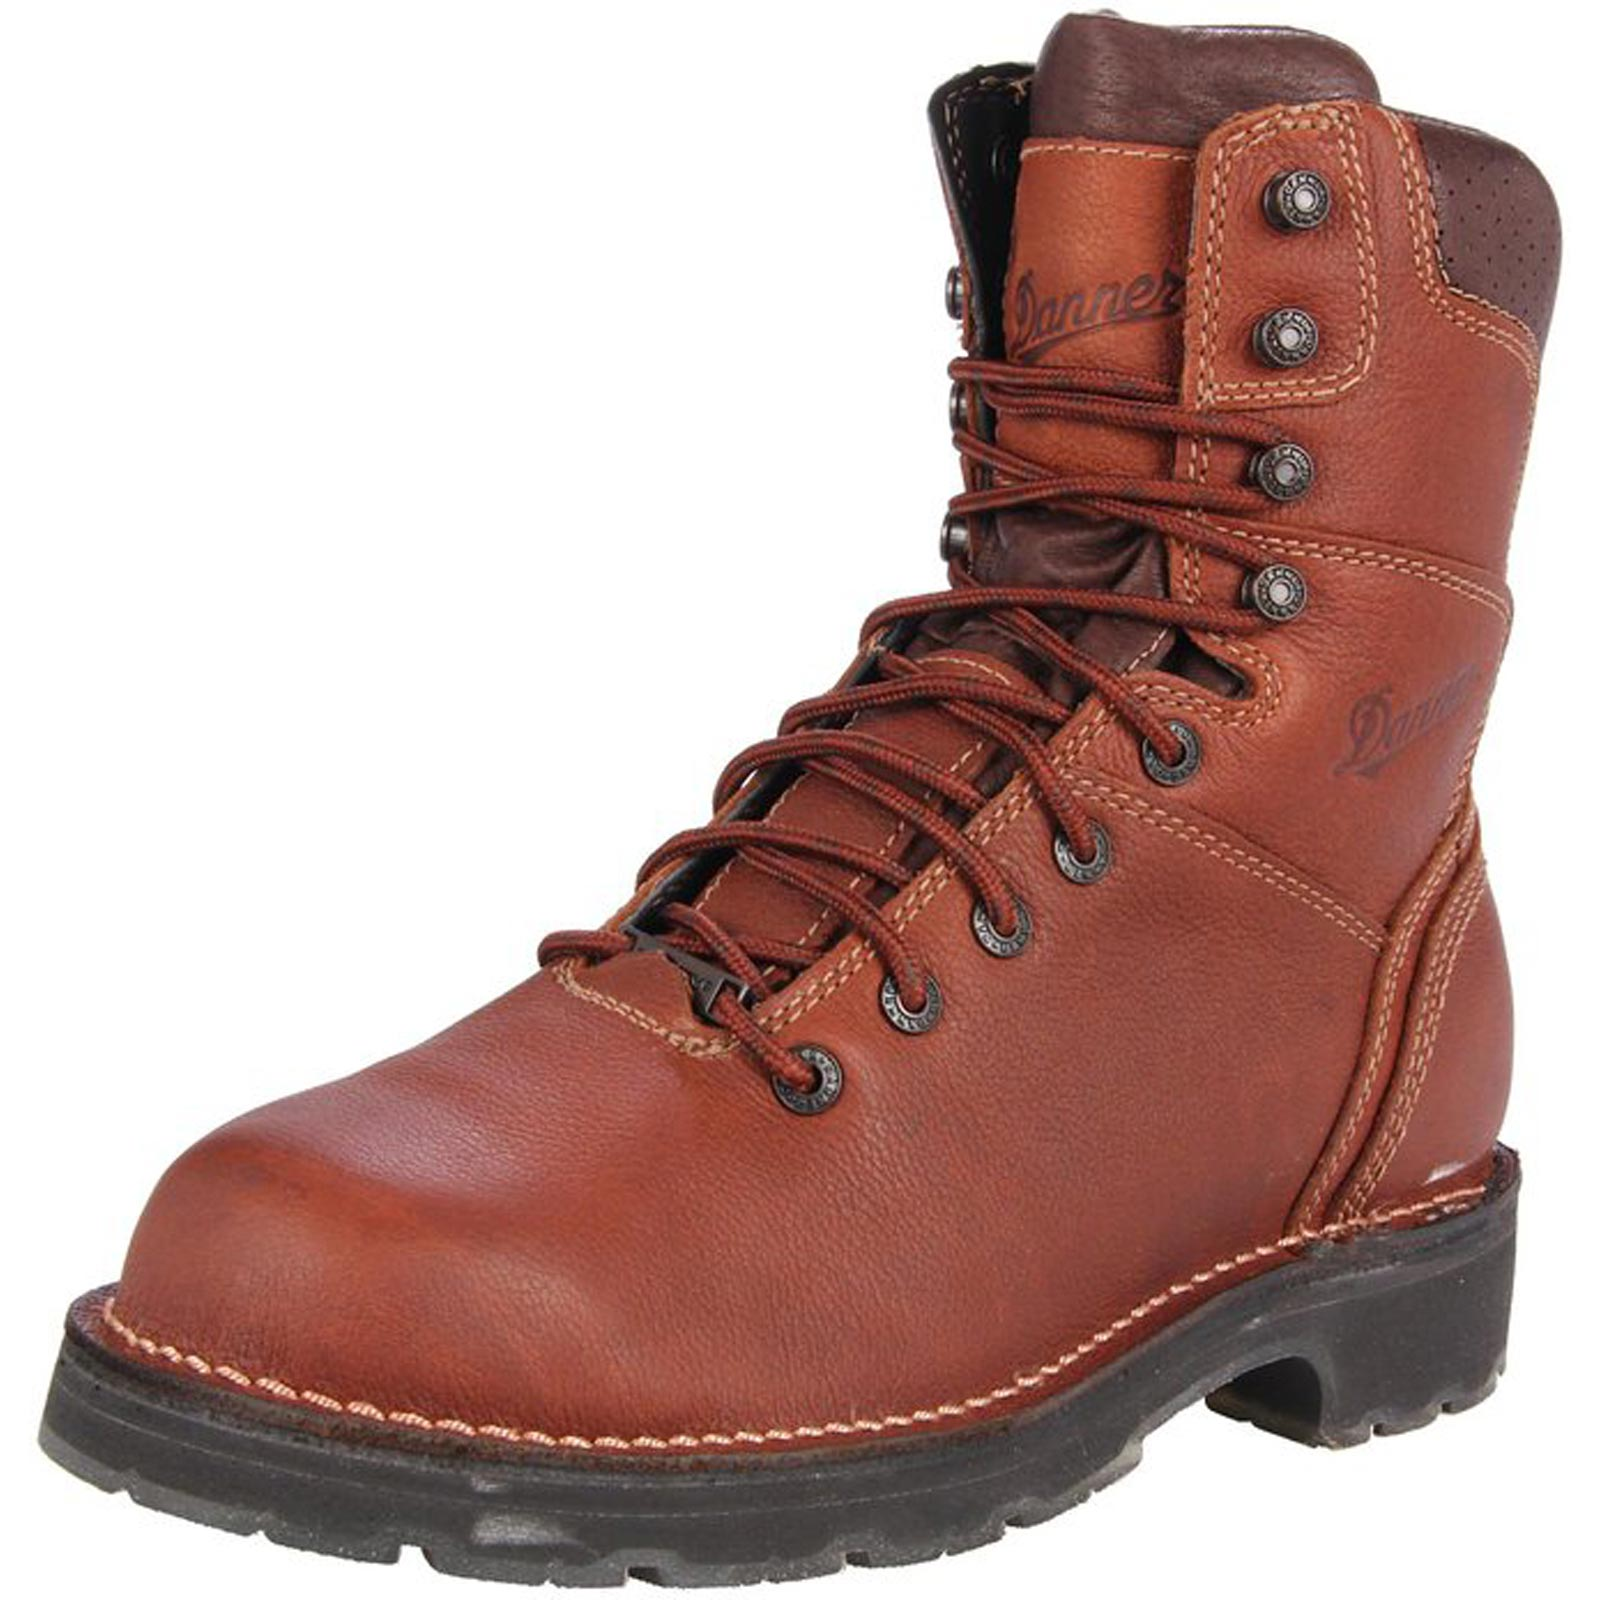 79bf1c48205 Danner Mens Workman GTX Brown Work Boots 16007